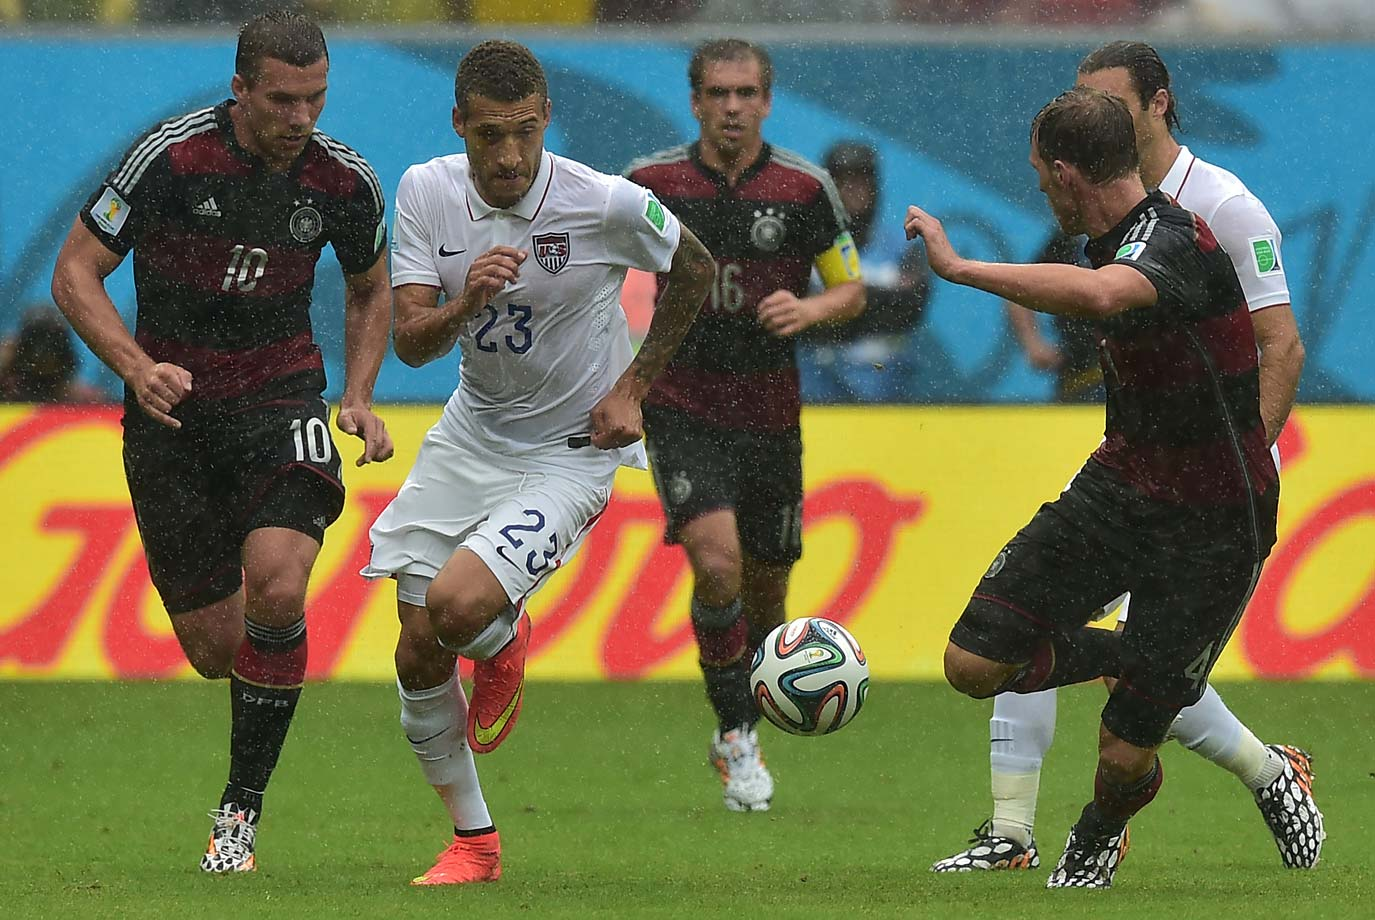 Germany's forward Lukas Podolski (left) and US defender Fabian Johnson vie for the ball.